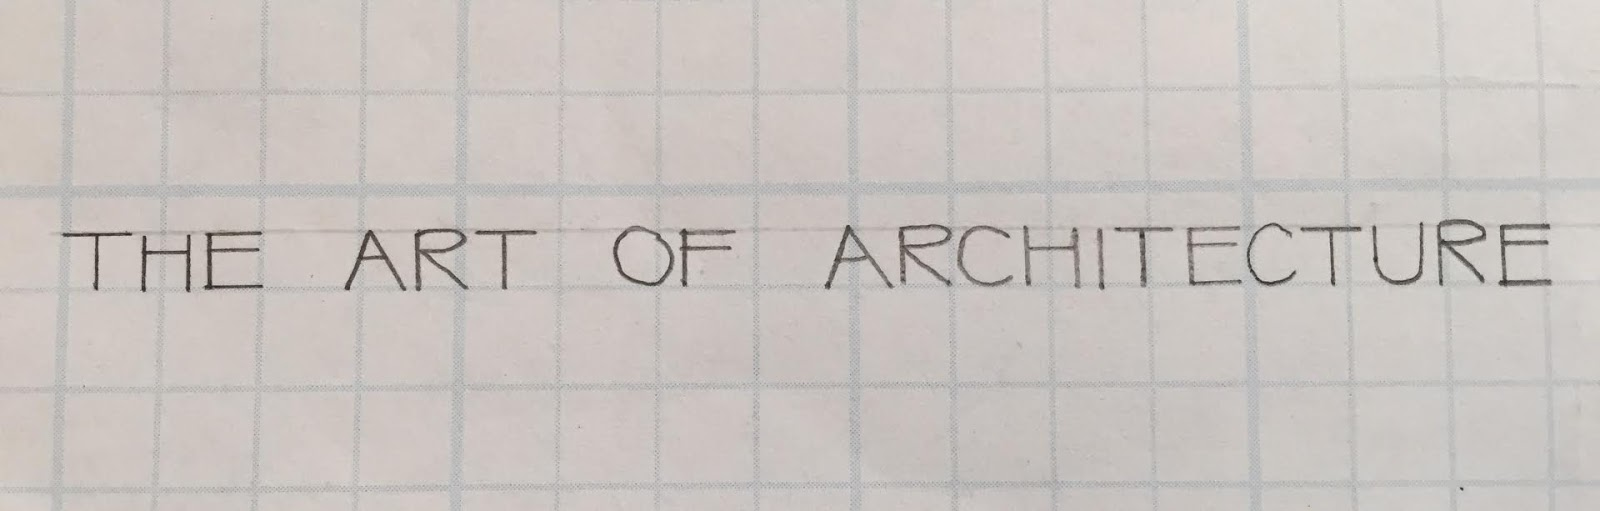 Architectural Drawing Font the art of architecture: architectural drawing: exercise 1 - a